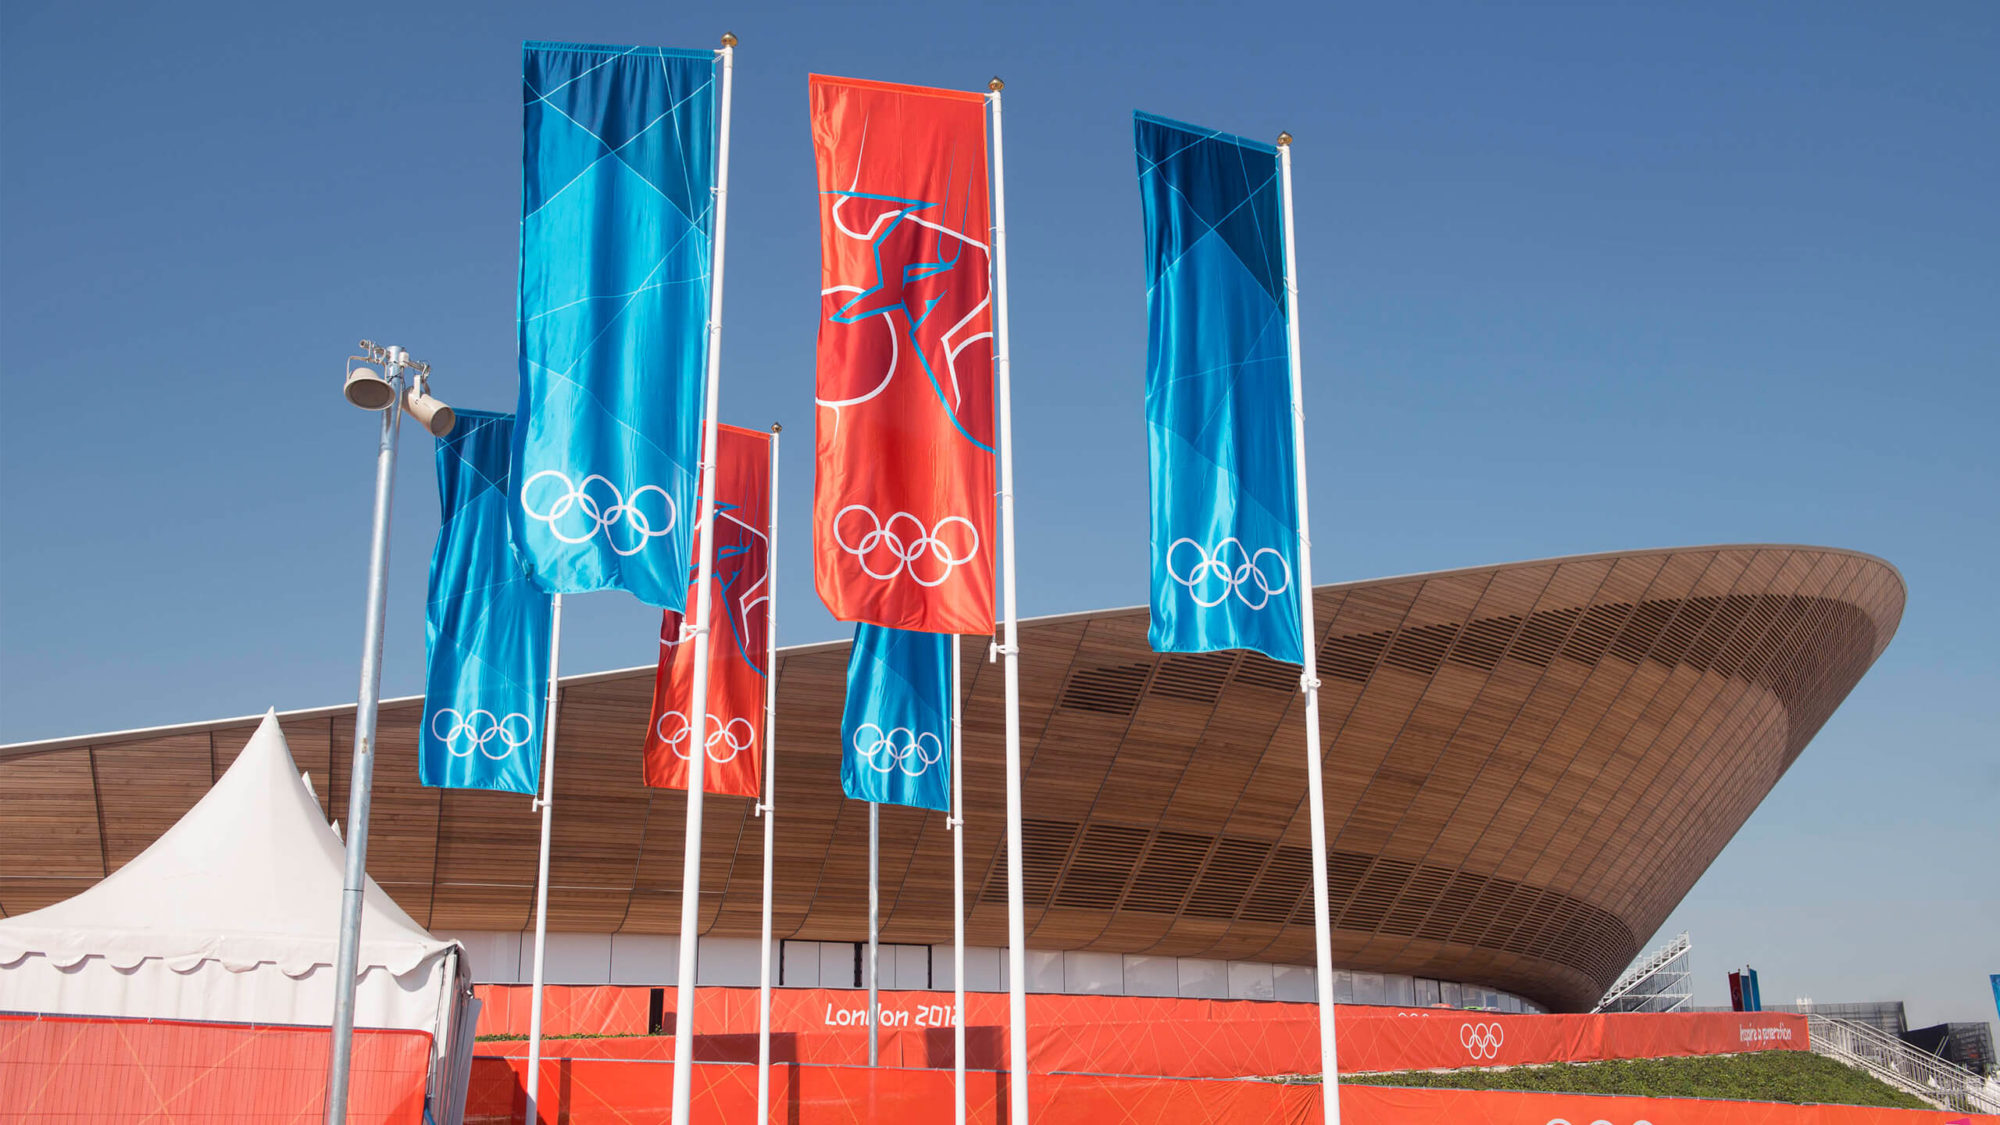 London 2012: Olympic Games